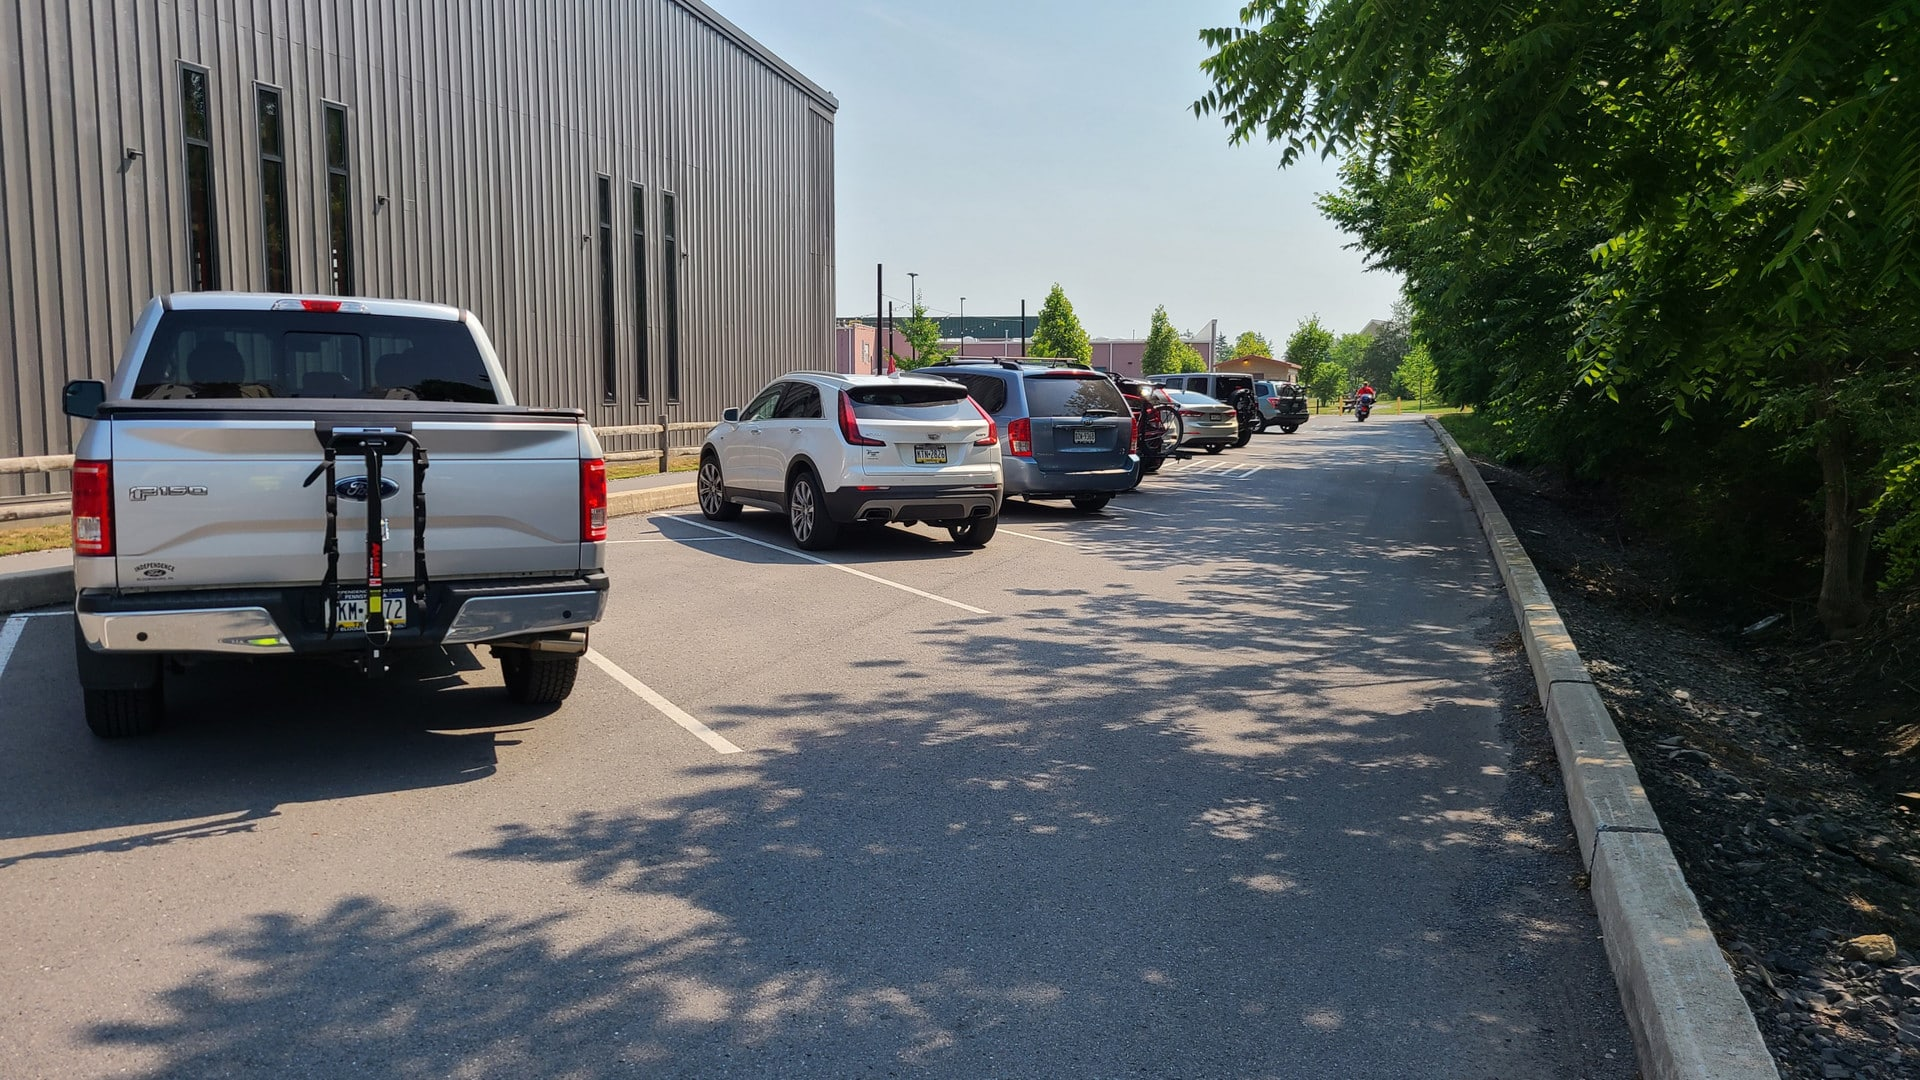 Vehicles are parked in a narrow parking lot. They include a silver Ford F150 pickup, a white Kia SUV, a blue minivan, a red SUV with a bike on the back, a white sedan, a blue Jeep Wrangler, and a motorcycle.